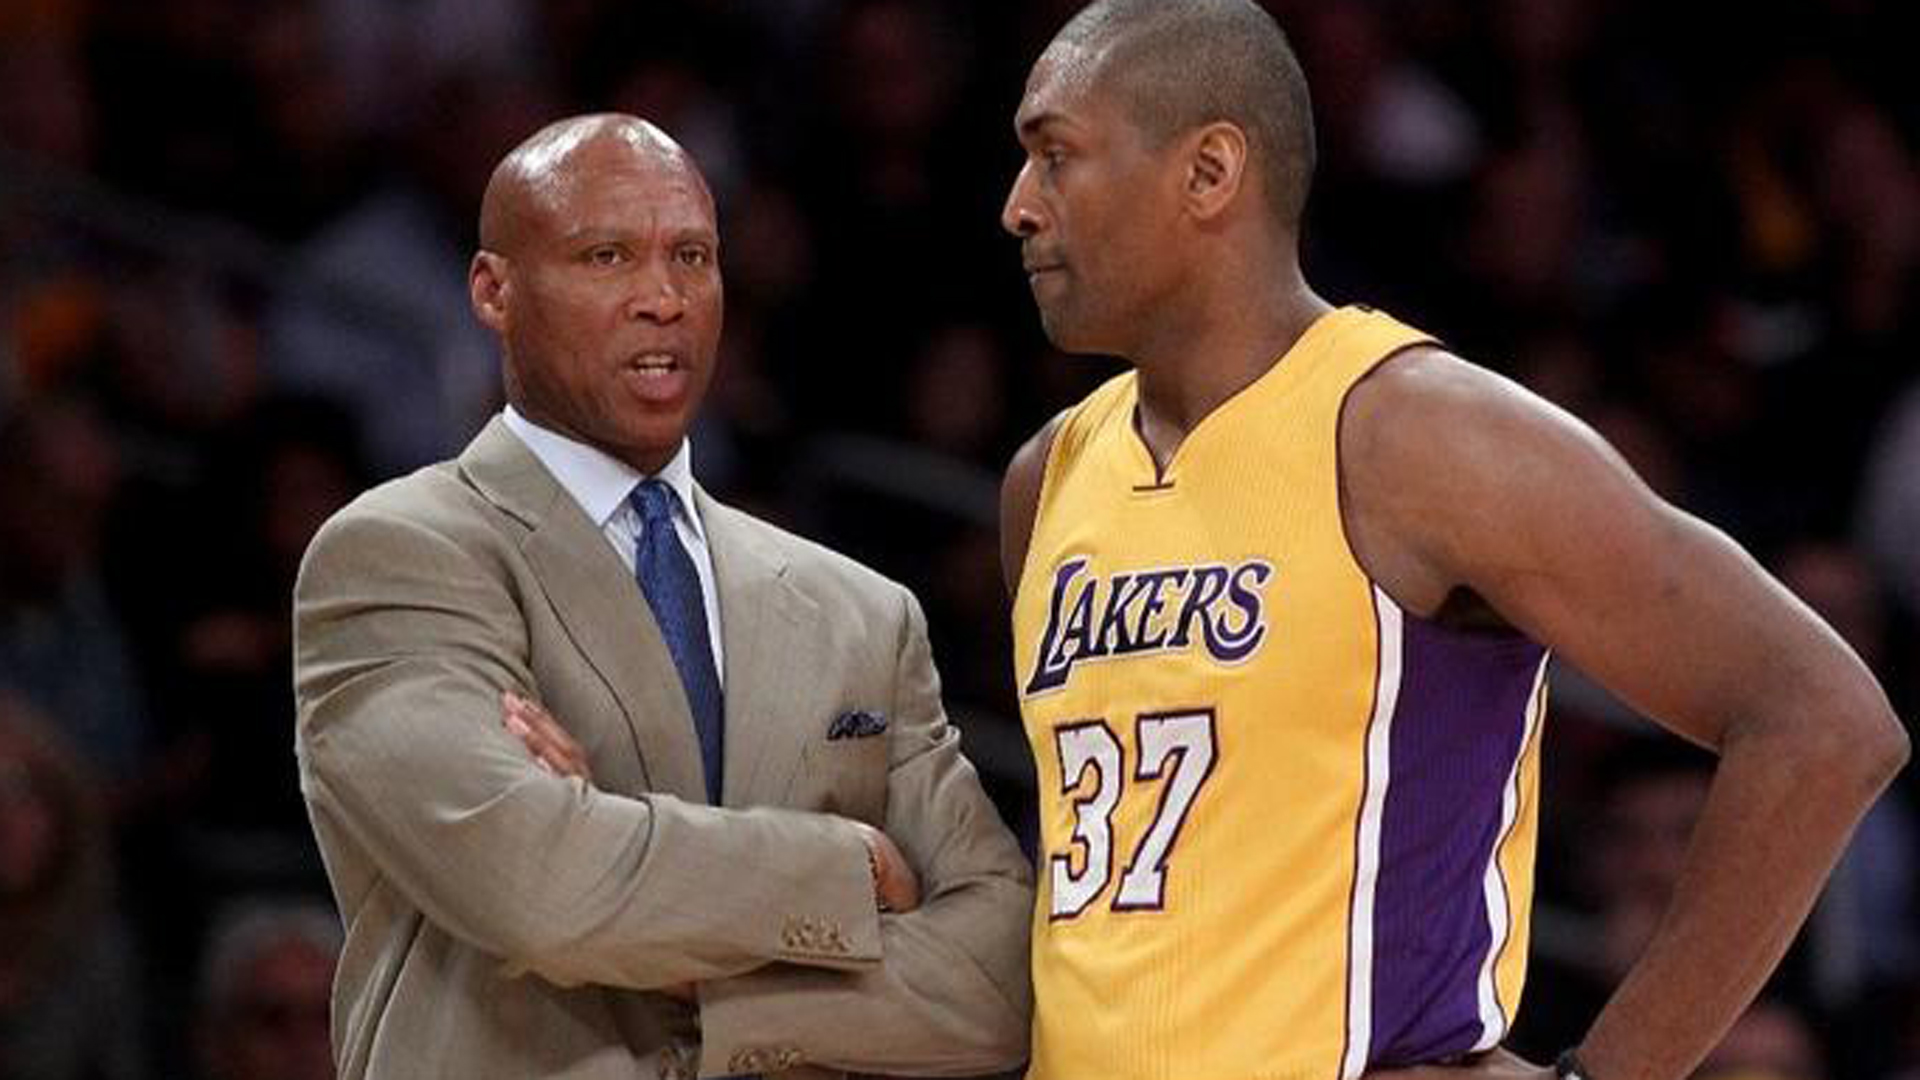 Former Lakers coach Byron Scott speaks with player Metta World Peace during a game against the Orlando Magic in March 2016 at Staples Center. (Luis Sinco/Los Angeles Times)